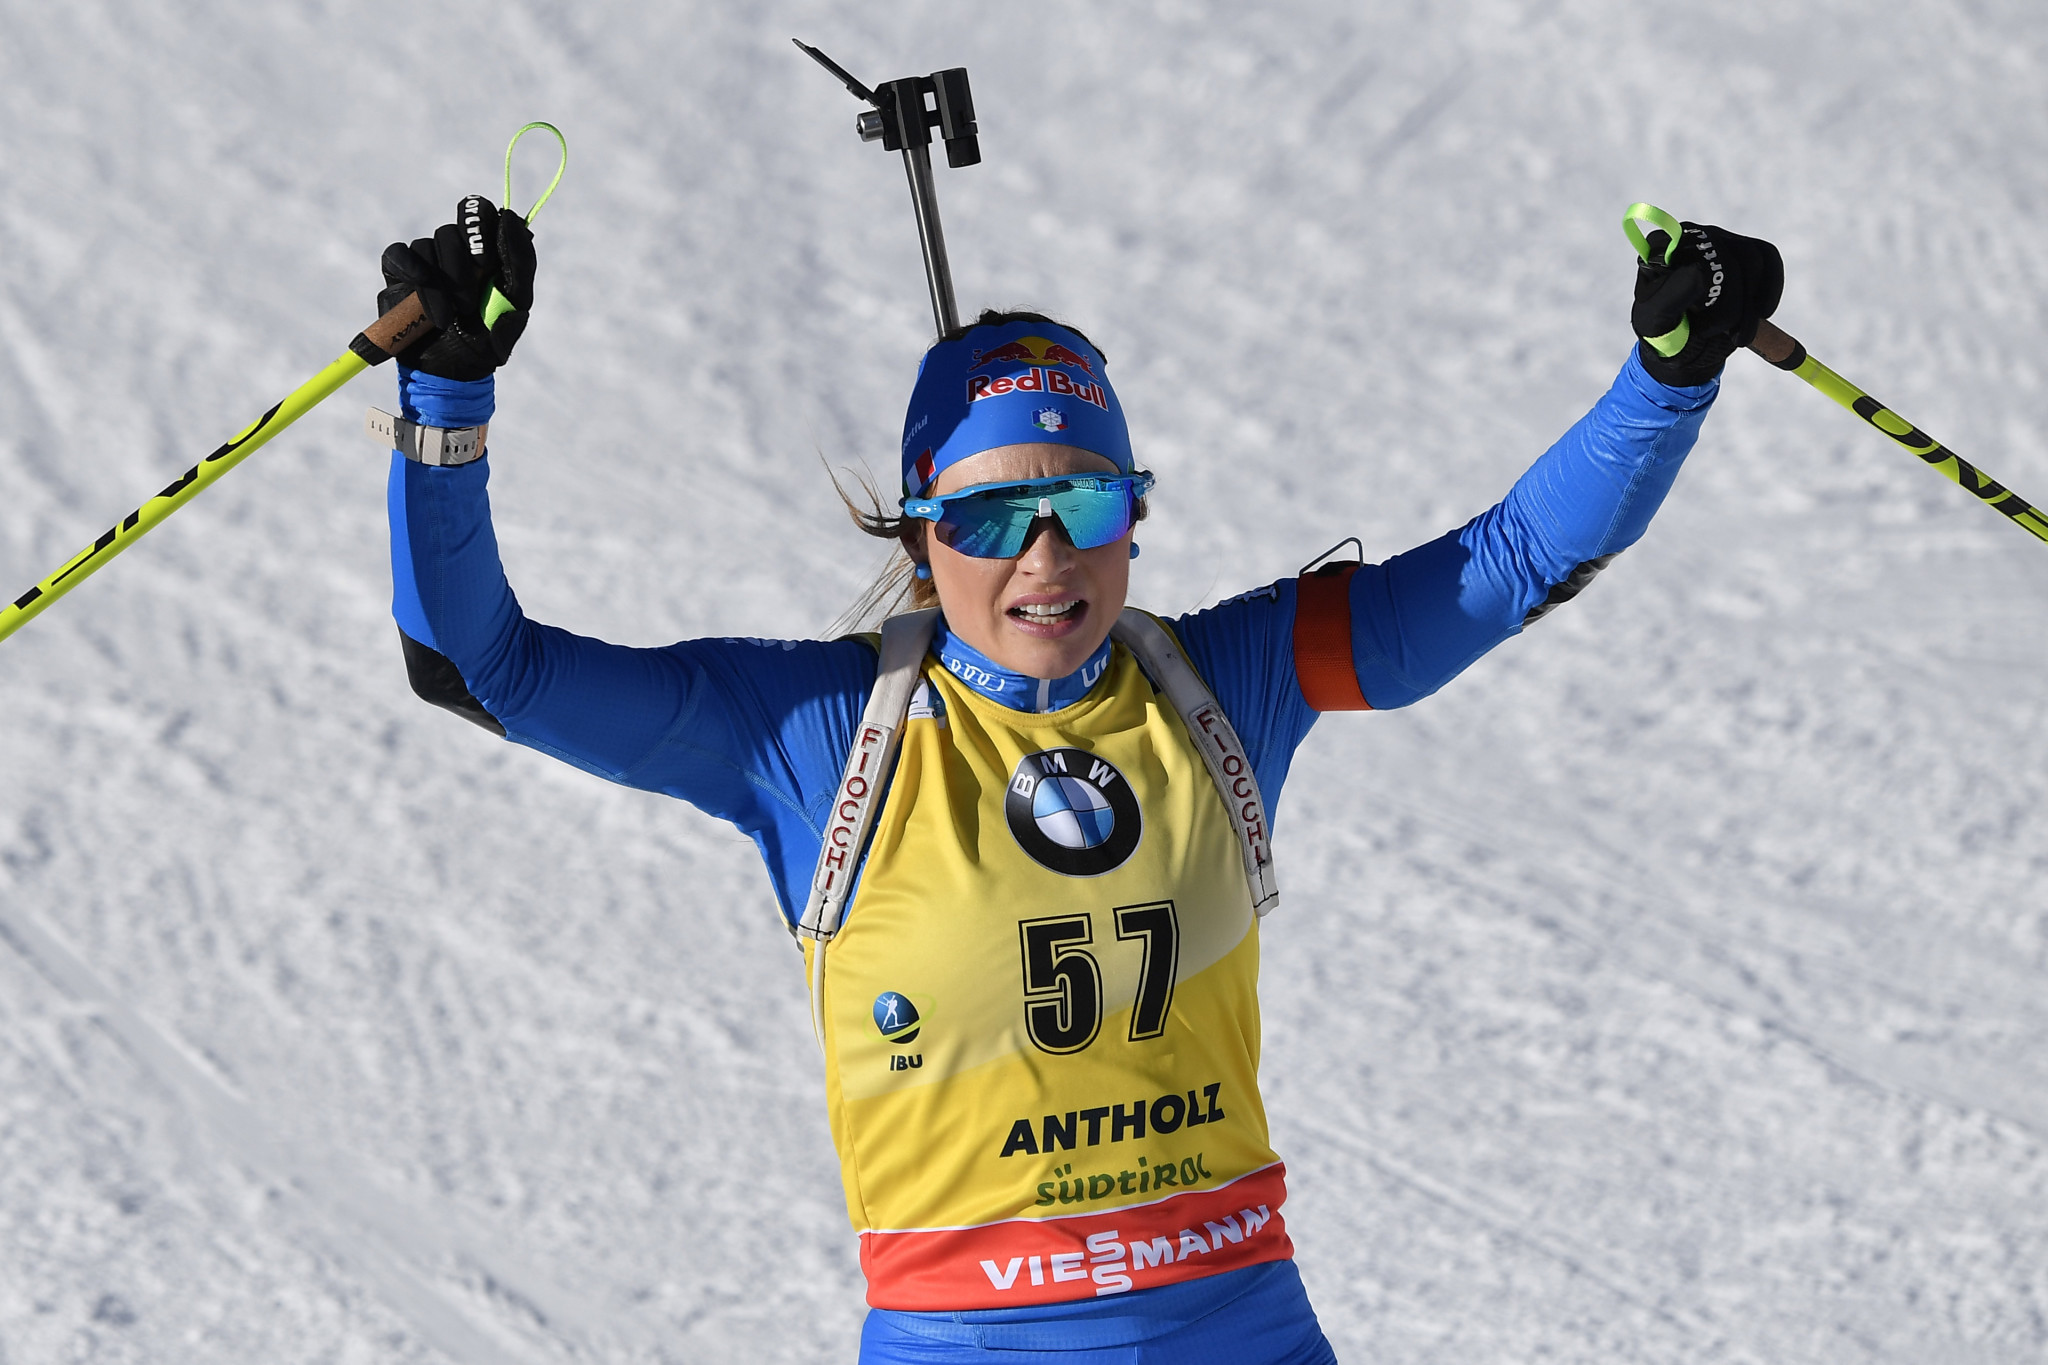 Italy's Dorothea Wierer celebrates her latest victory at the Biathlon World Championships in Antholz-Anterselva ©Getty Images